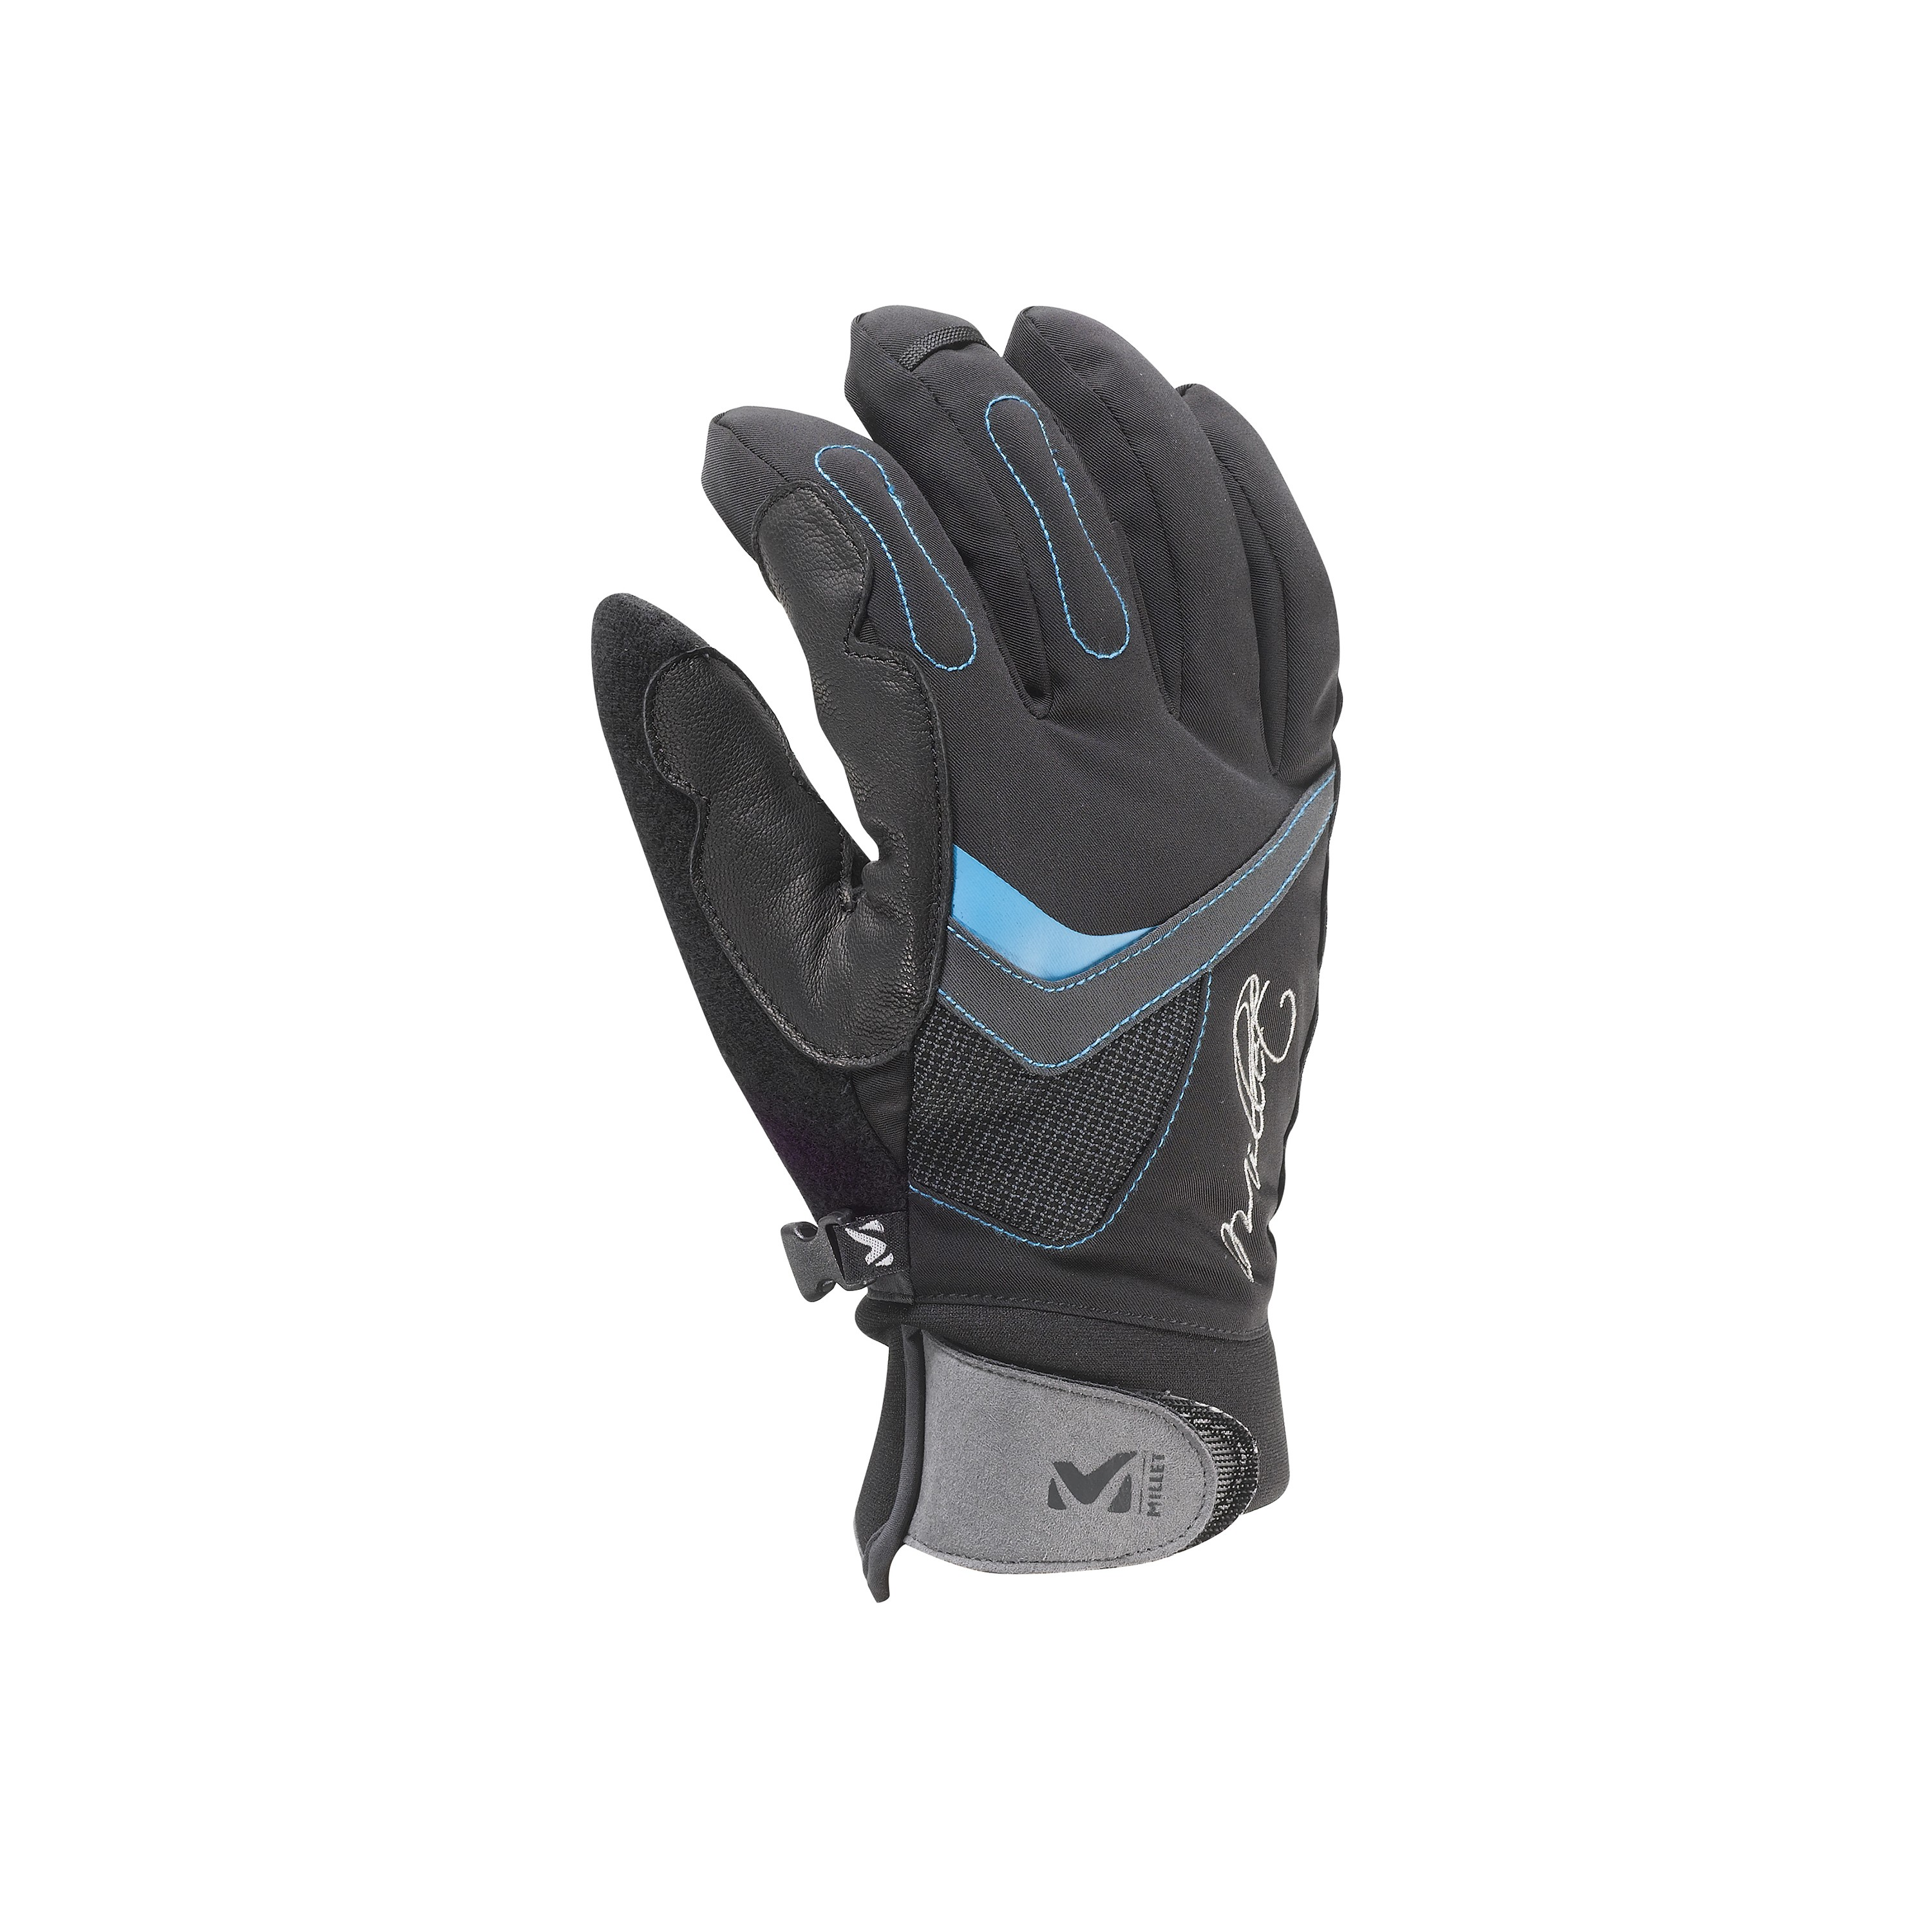 LD TOURING TRAINING GLOVE